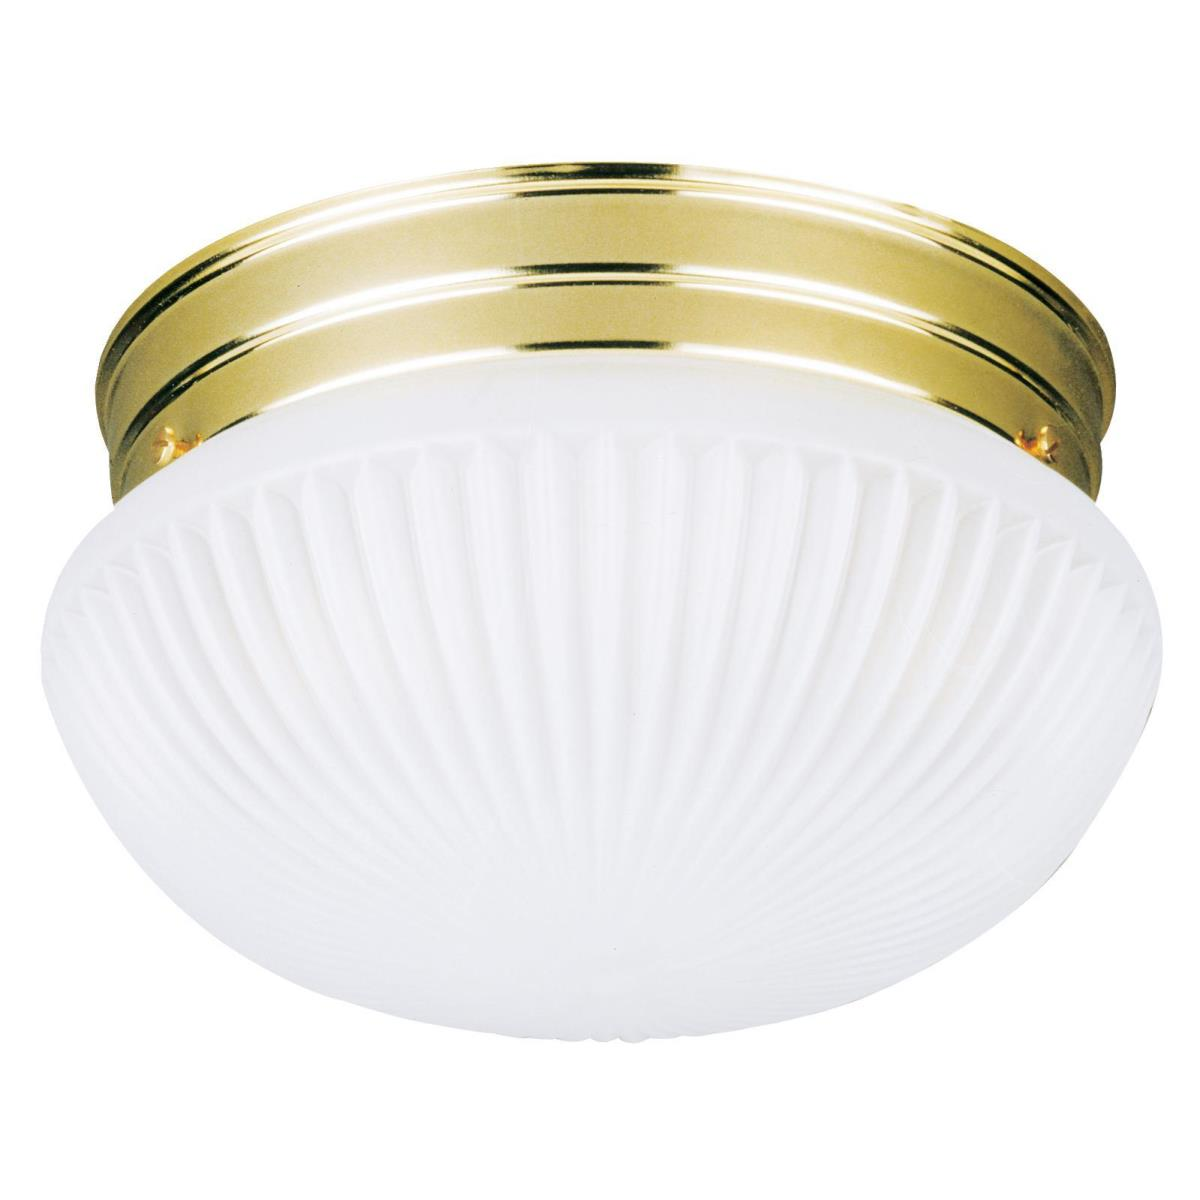 1 Light Flush Ceiling Fixture Polished Brass Finish with Satin White Ribbed Glass